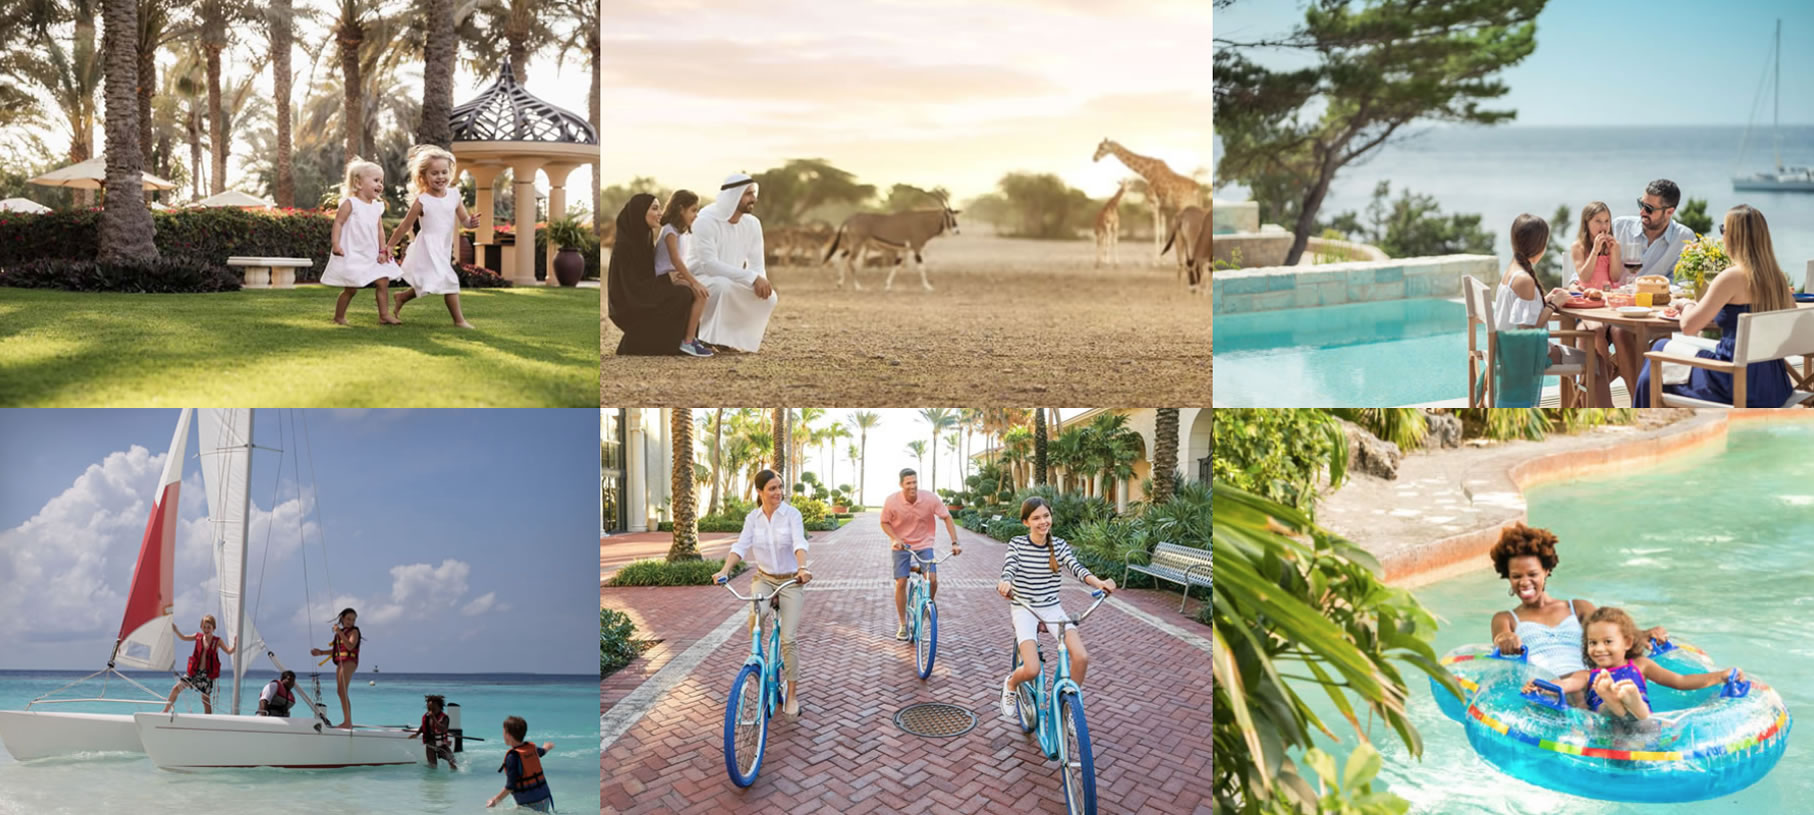 Your Daily Inspiration on Luxury Family Travel